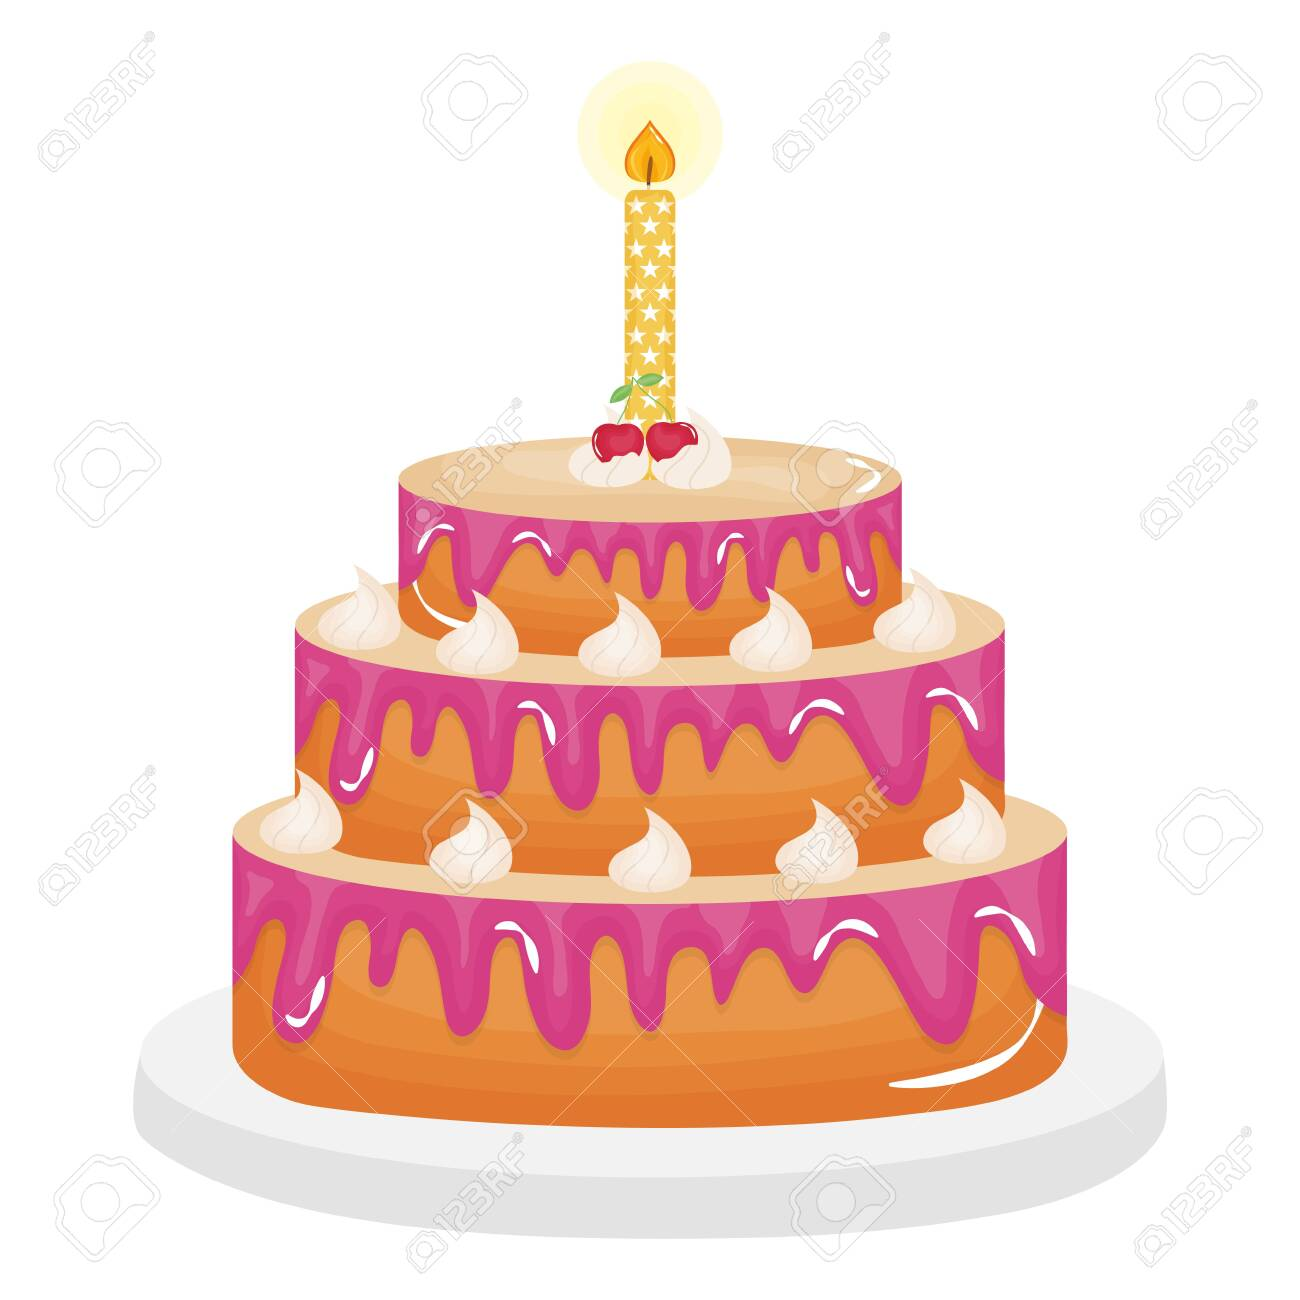 delicious sweet cake with cherries and candles vector illustration design - 122748228